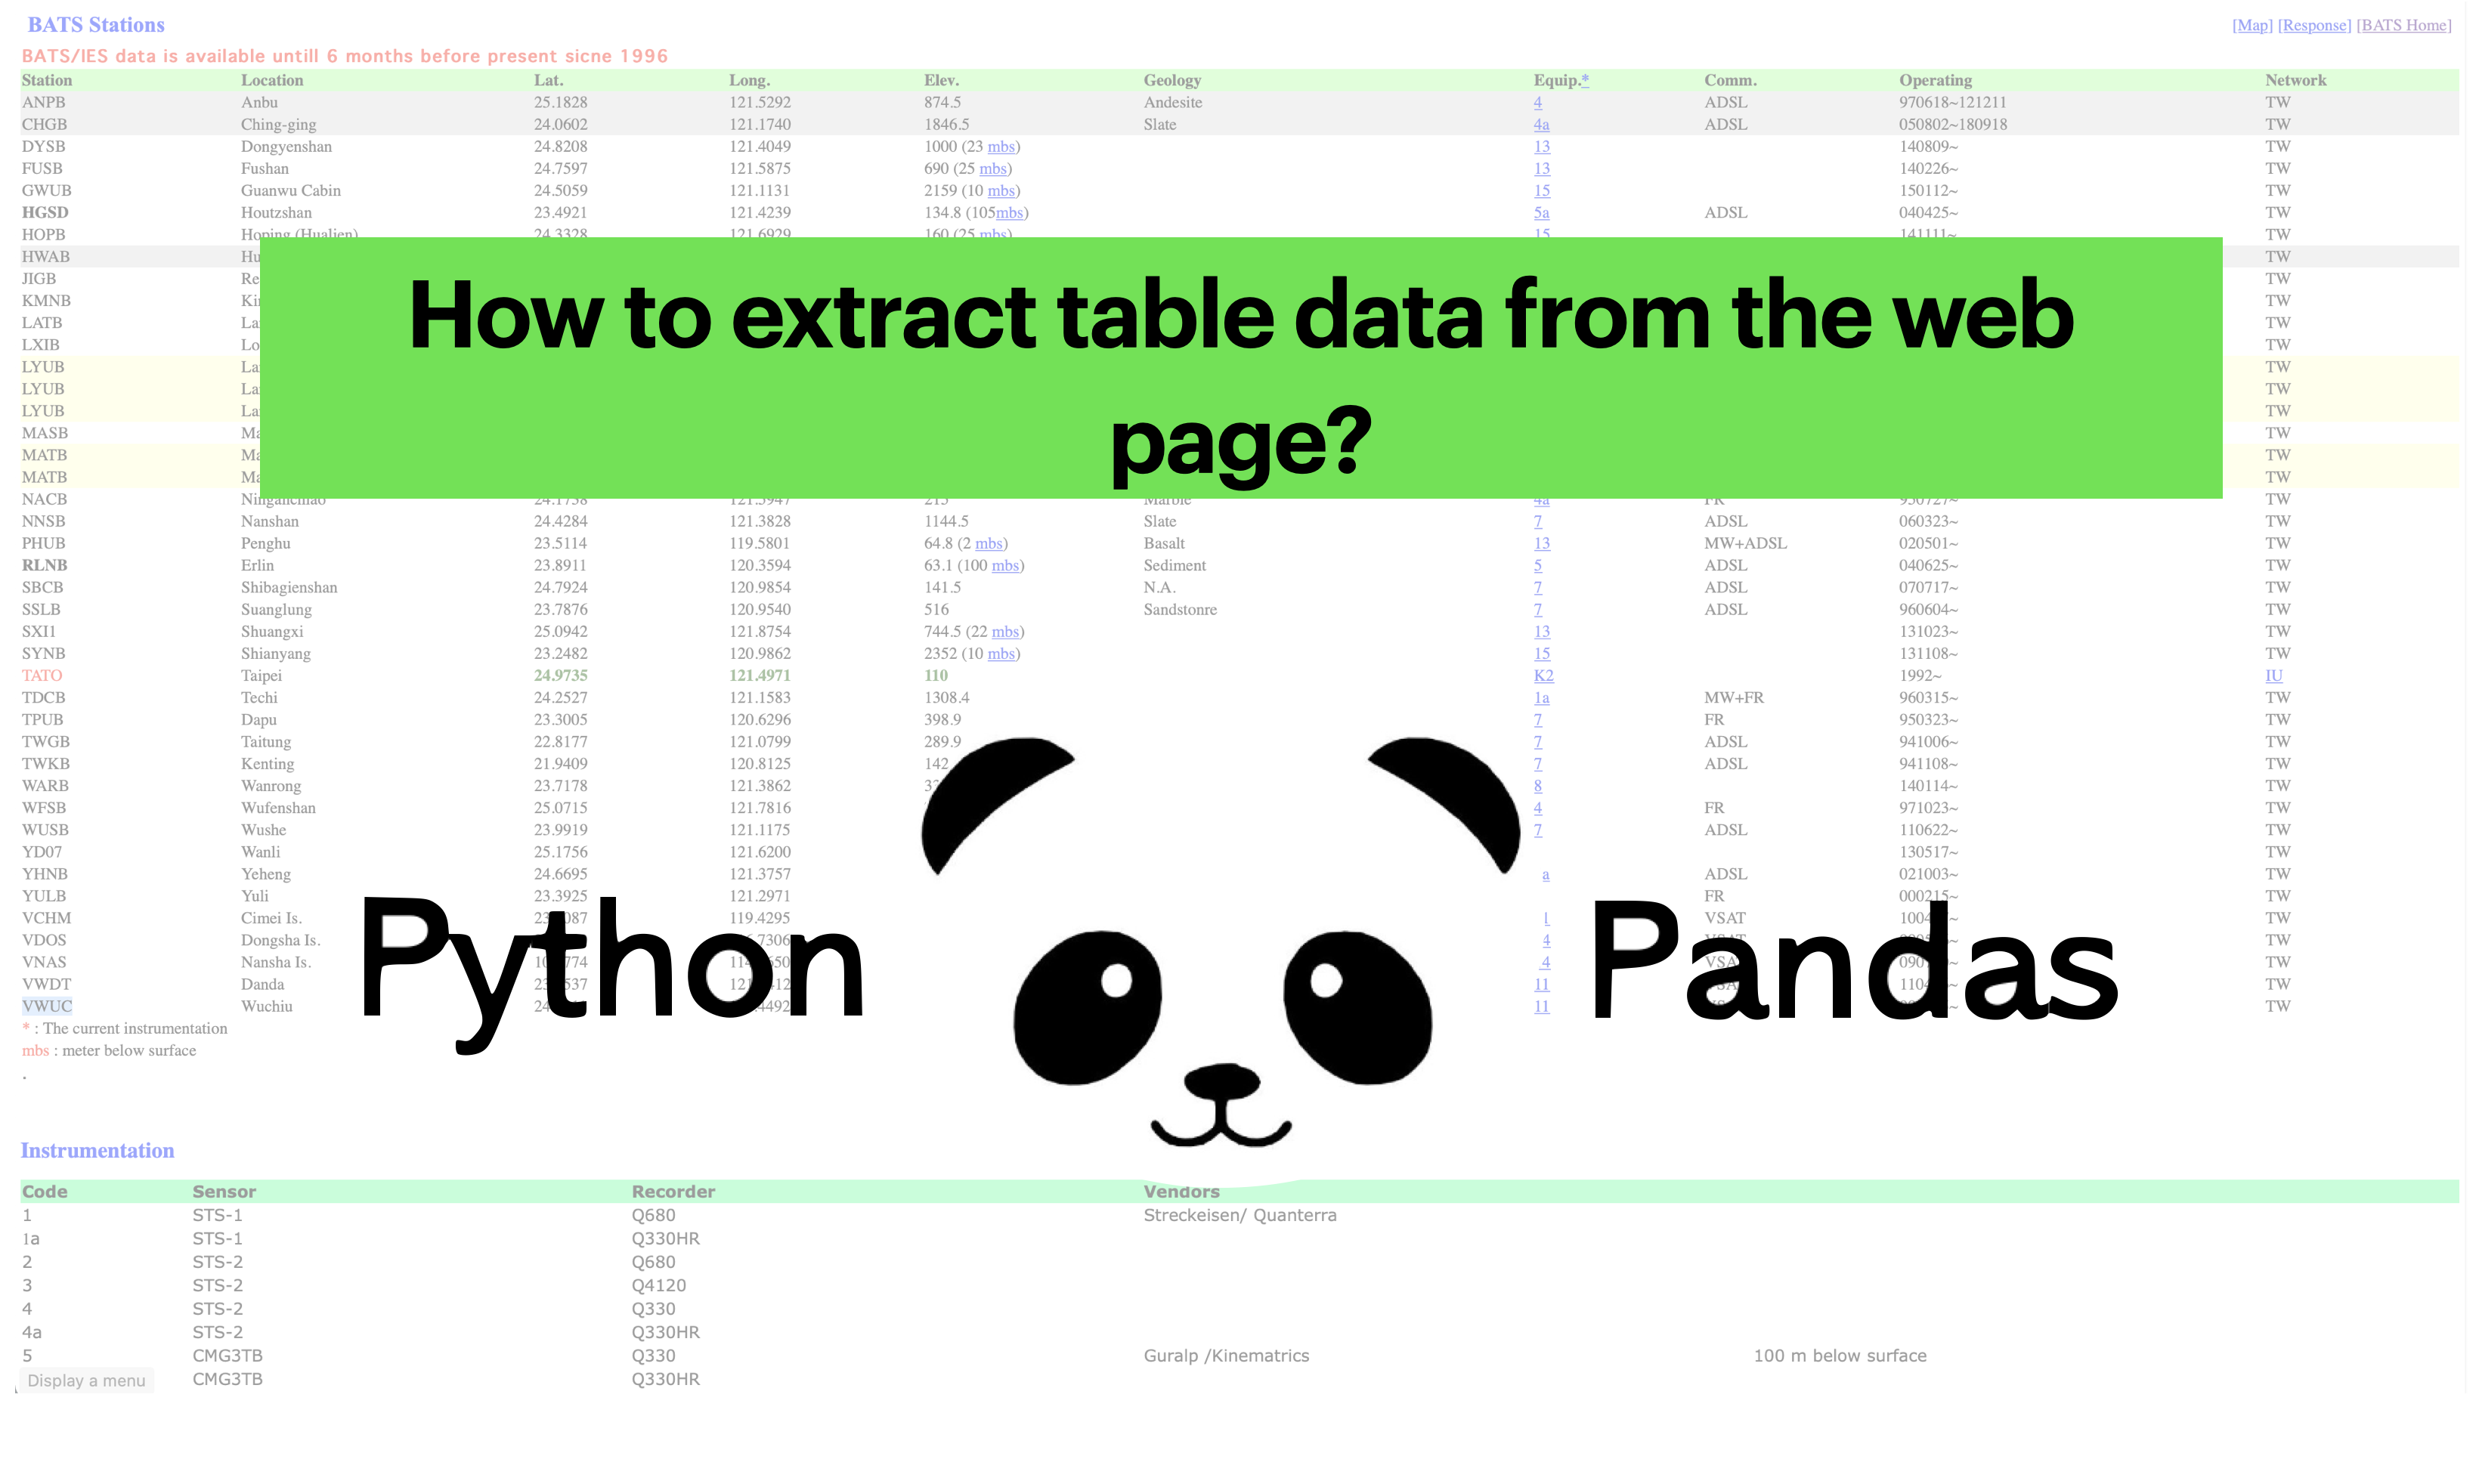 How to extract station data from the web page